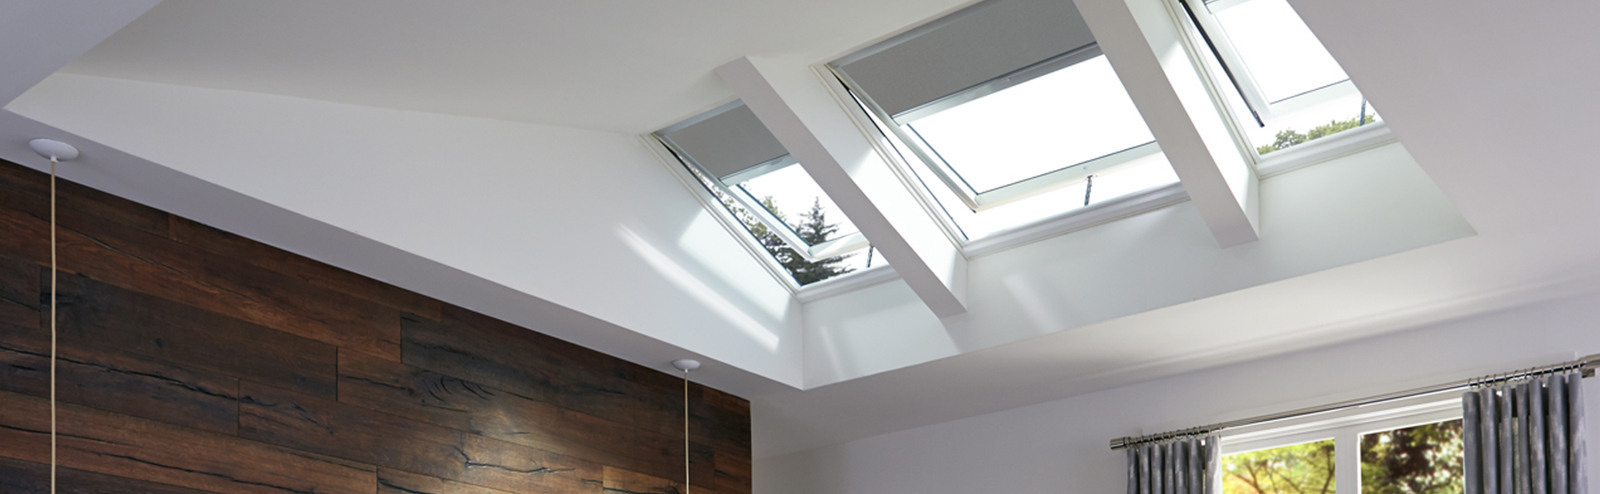 standard lights pages venting products mount sky inc opening curb skylights skylight crystalite lighting